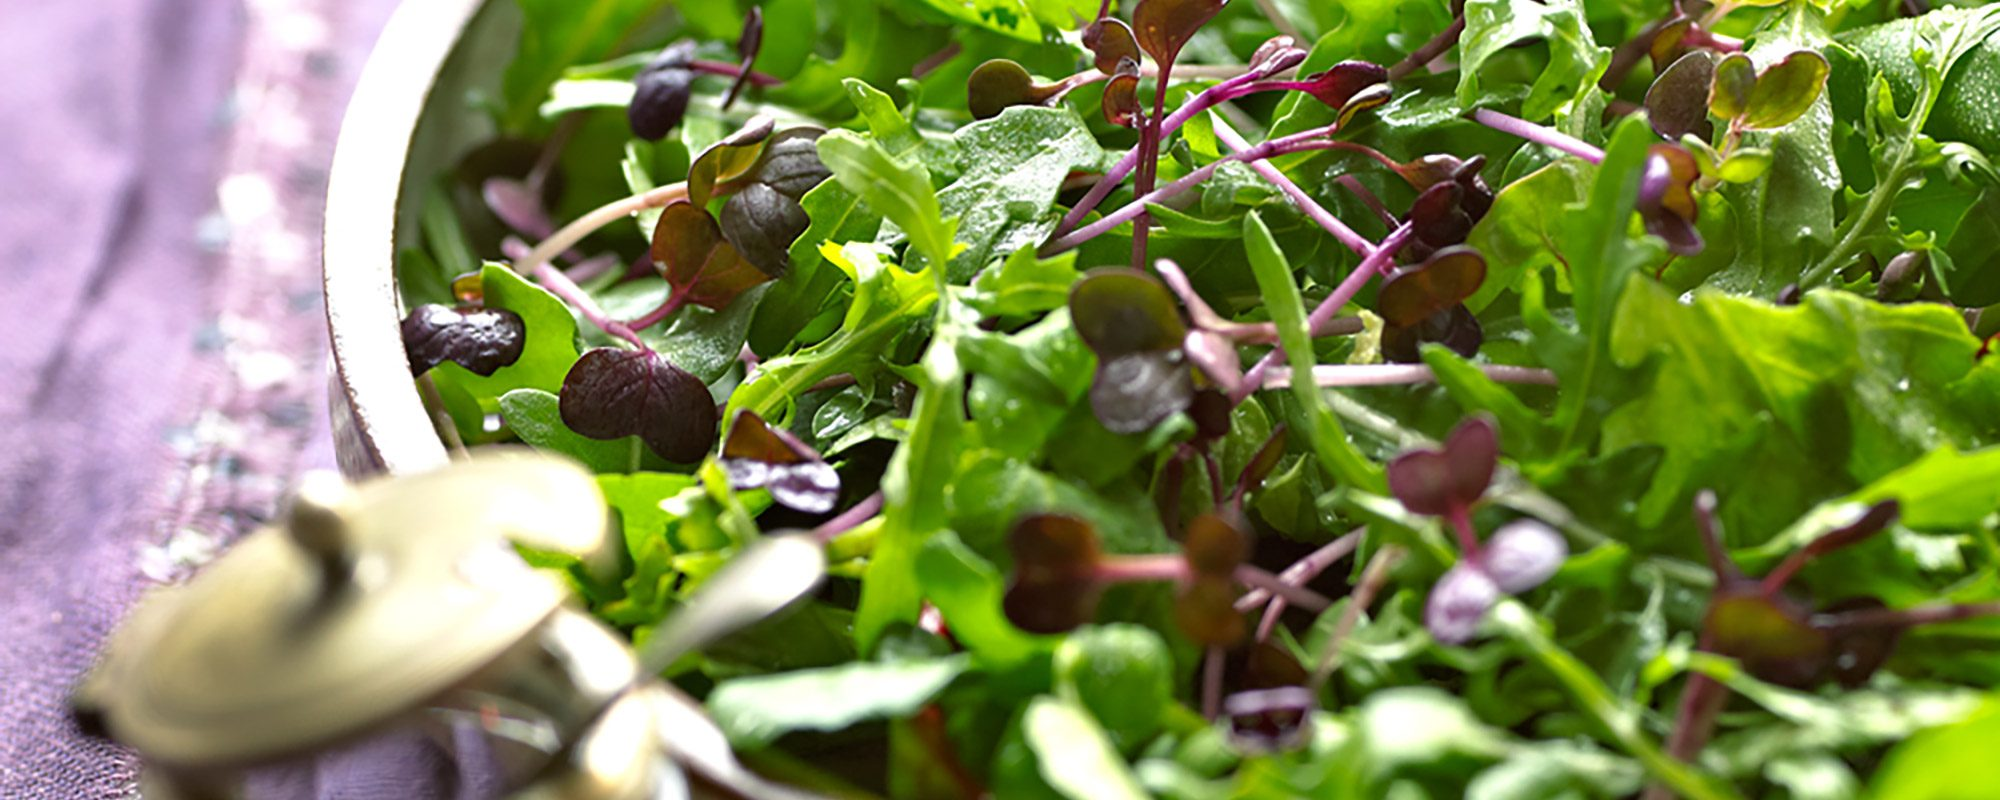 Fresh salad with microgreens